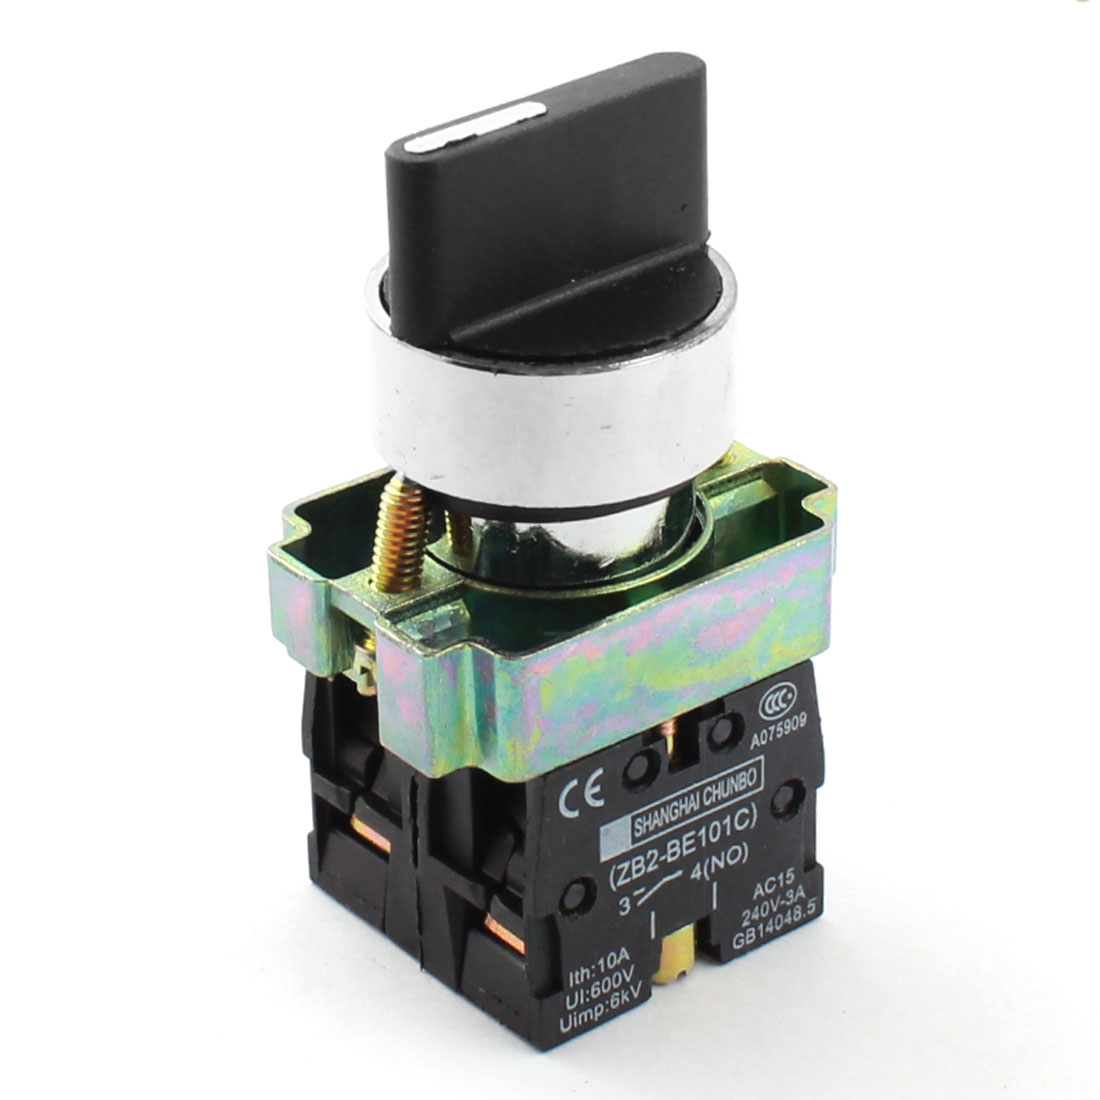 ZB2-BE101C AC 600V 10A 21mm Panel Mount DPST 2NO 3-Position Latching Rotary Selector Switch Black